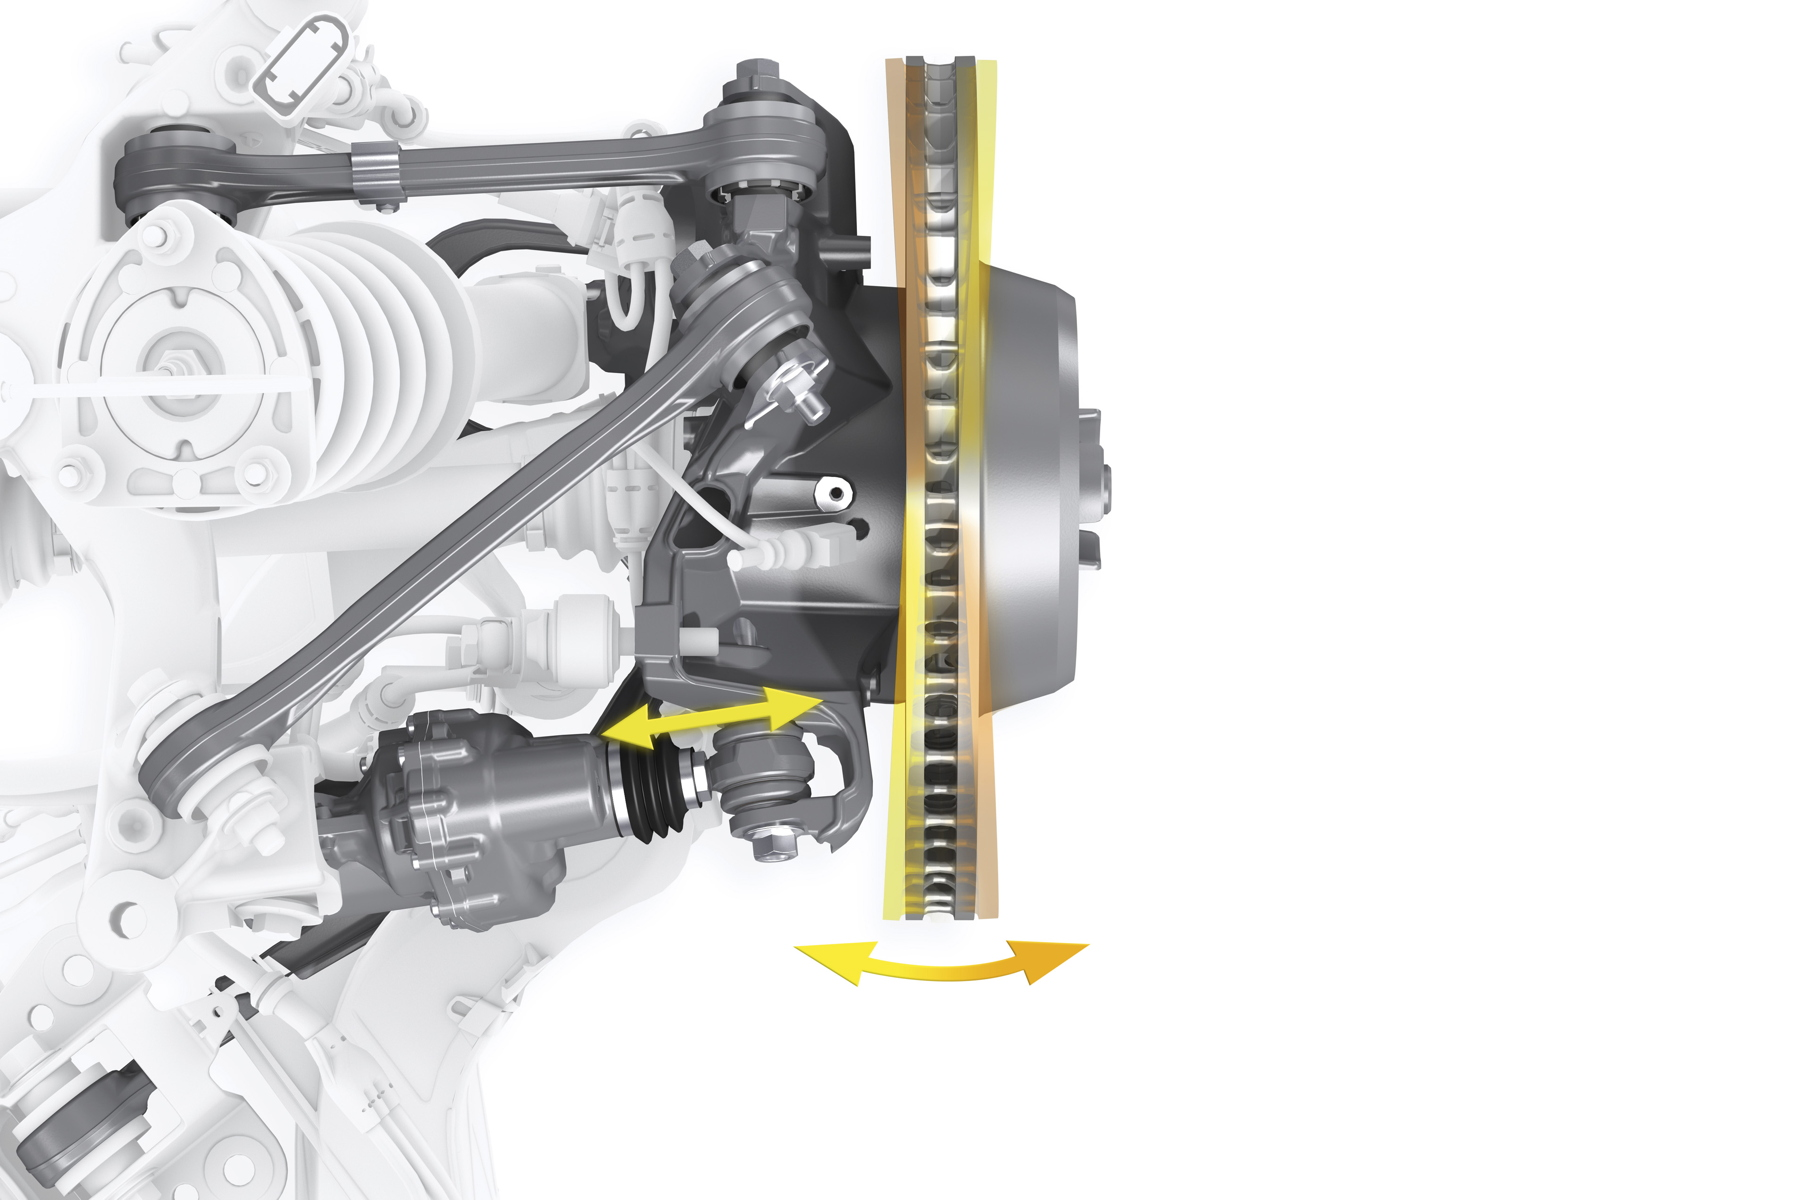 Technology Explained Rear Axle Steering Total 911 Porsche 918 Spyder Engine Diagram View Full Size